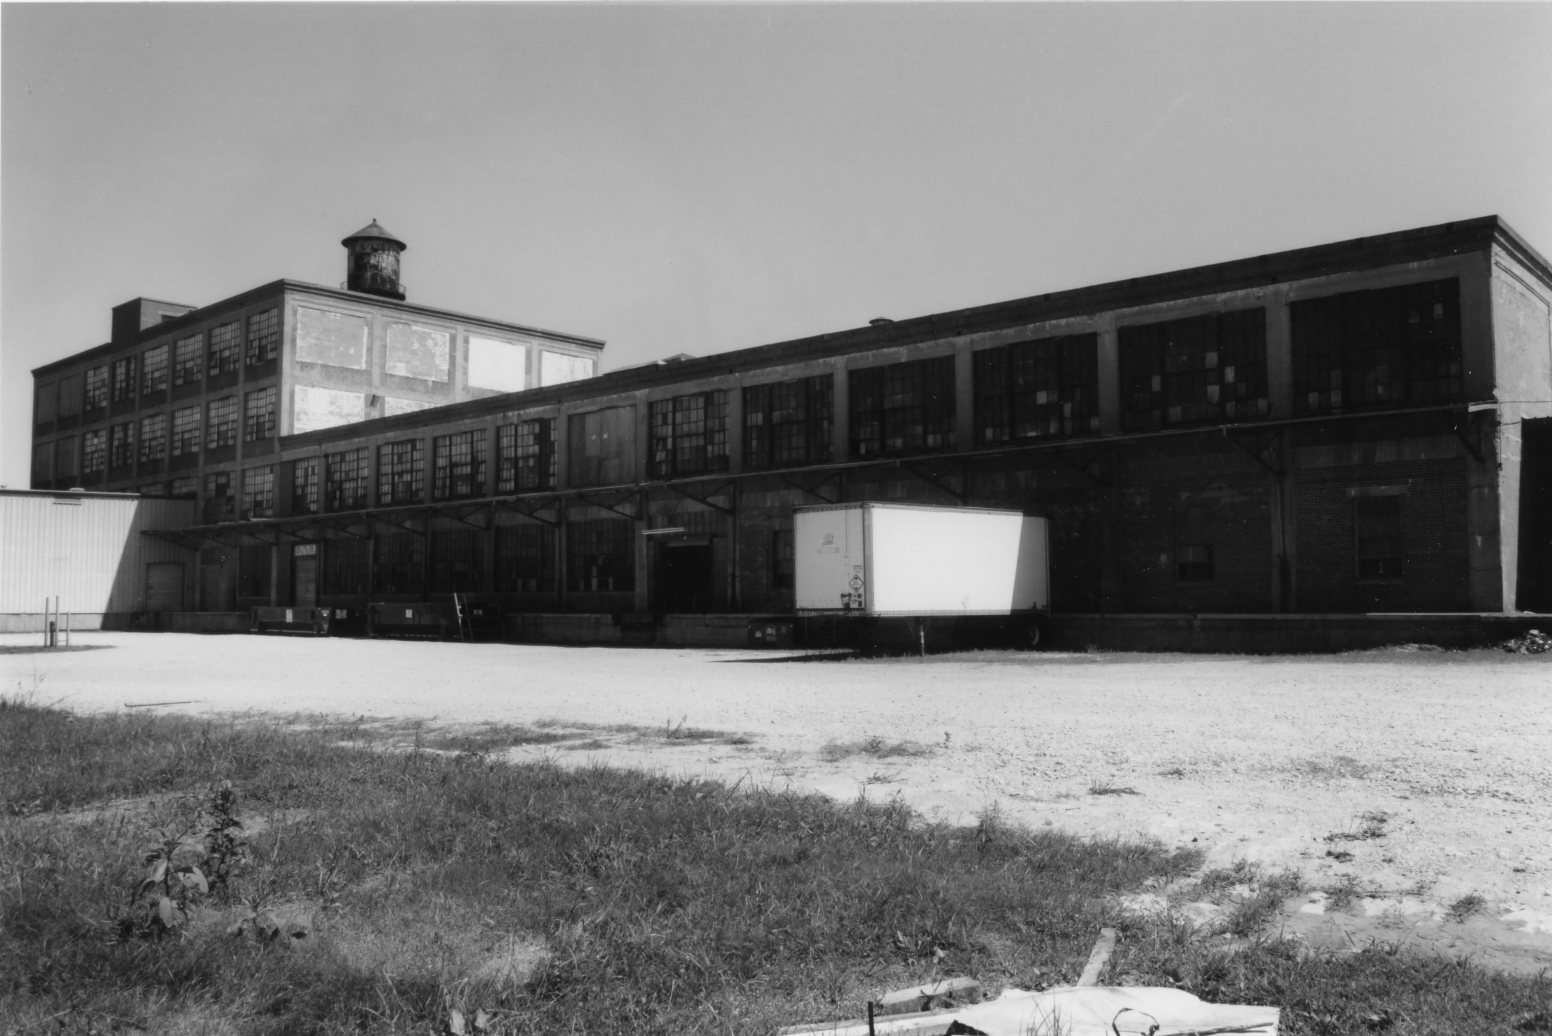 Loading dock of the former factory, pictured in 1998